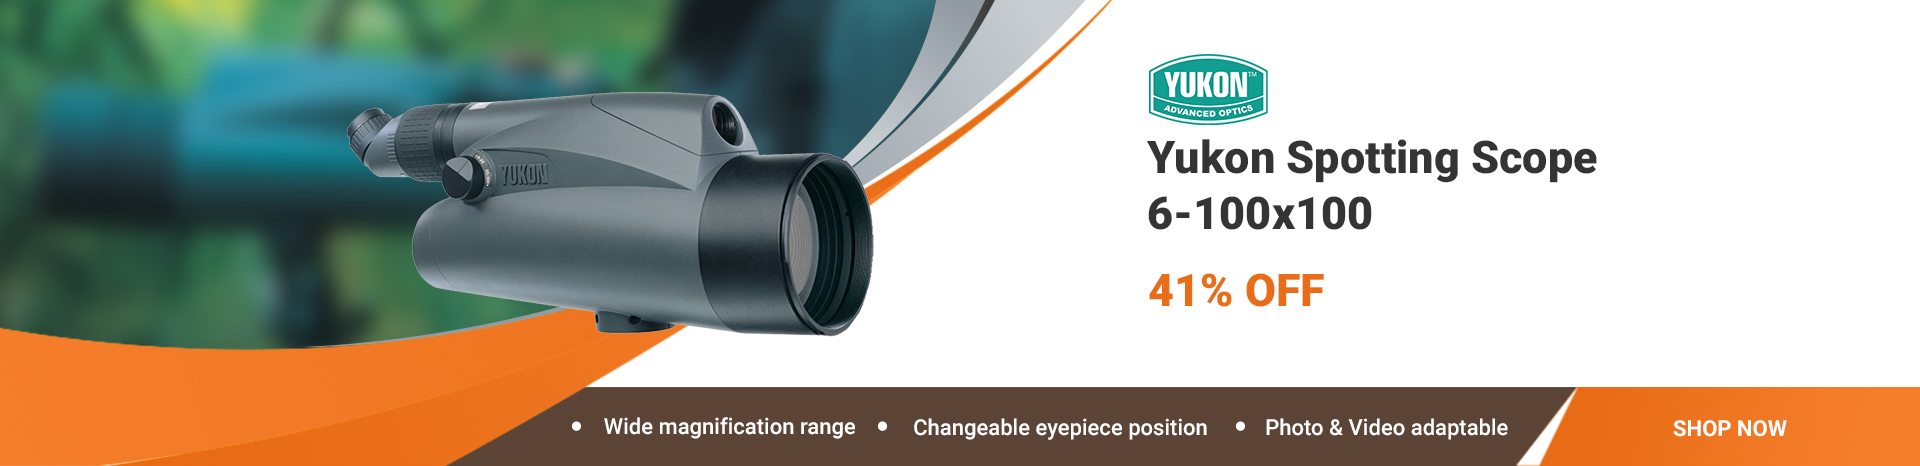 yukon-21031k-spotting scope